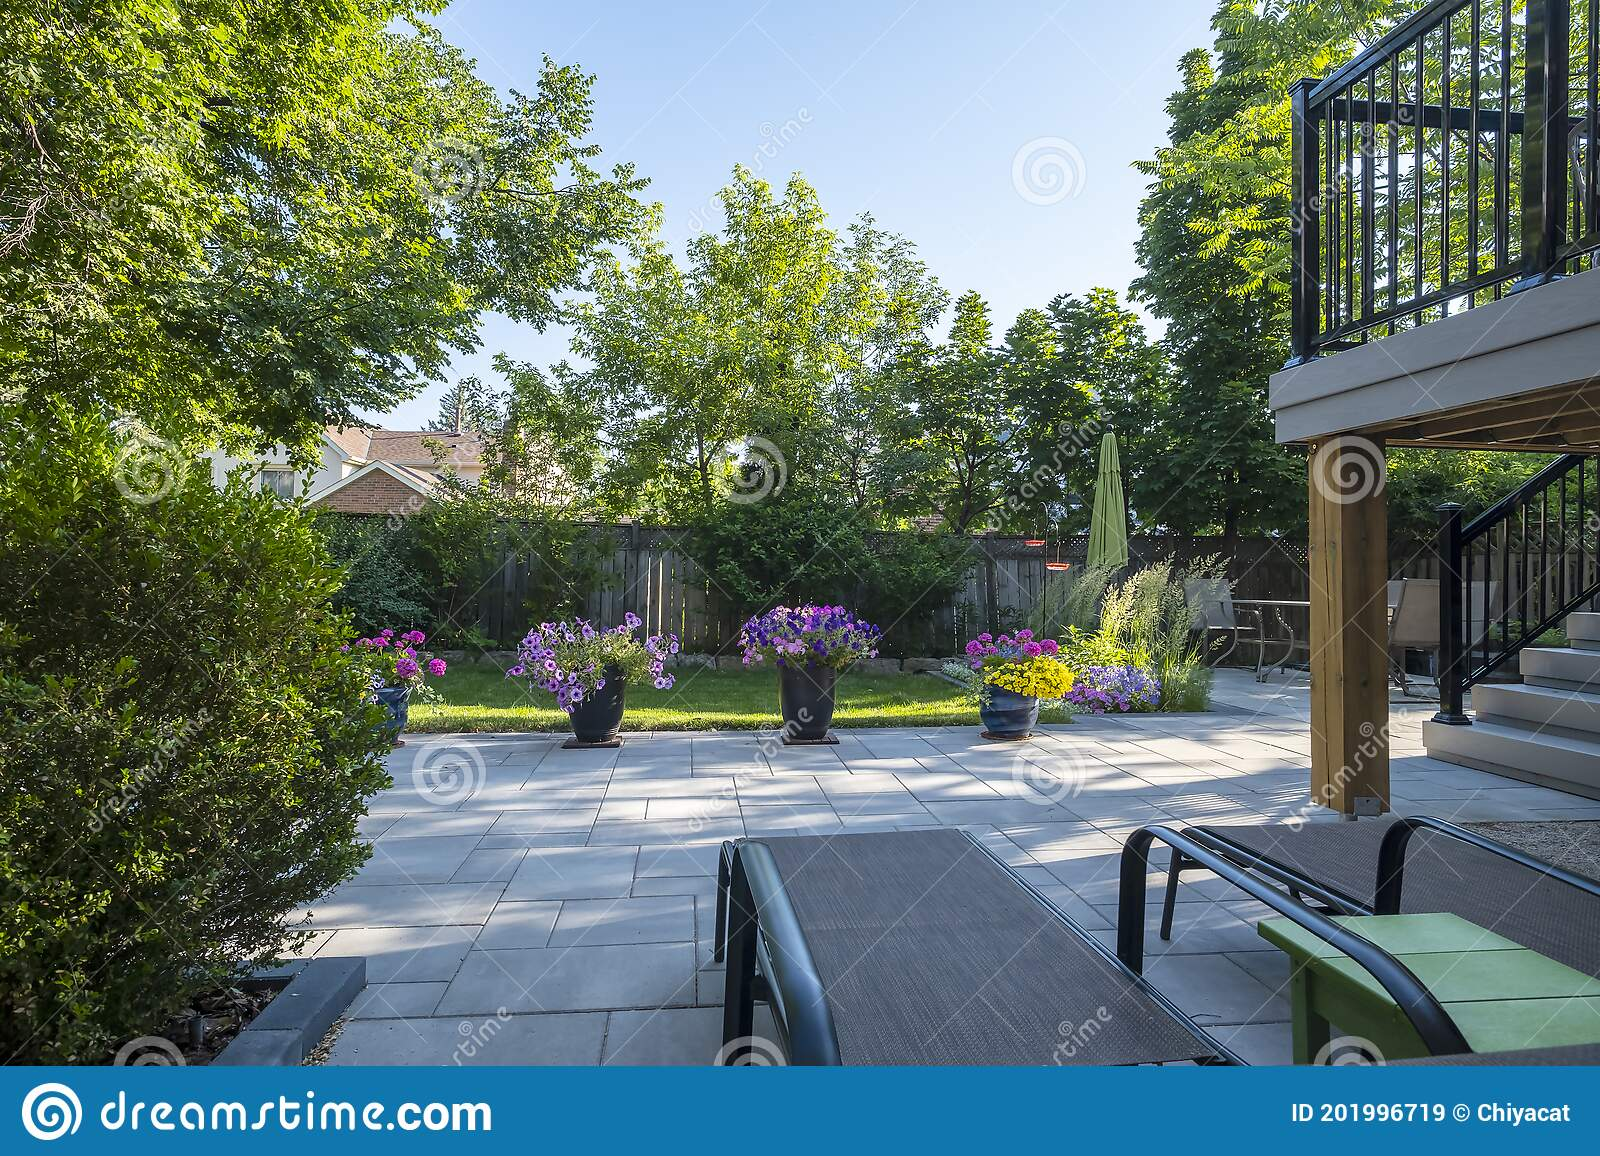 1 357 Landscaped Backyard Patio Photos Free Royalty Free Stock Photos From Dreamstime